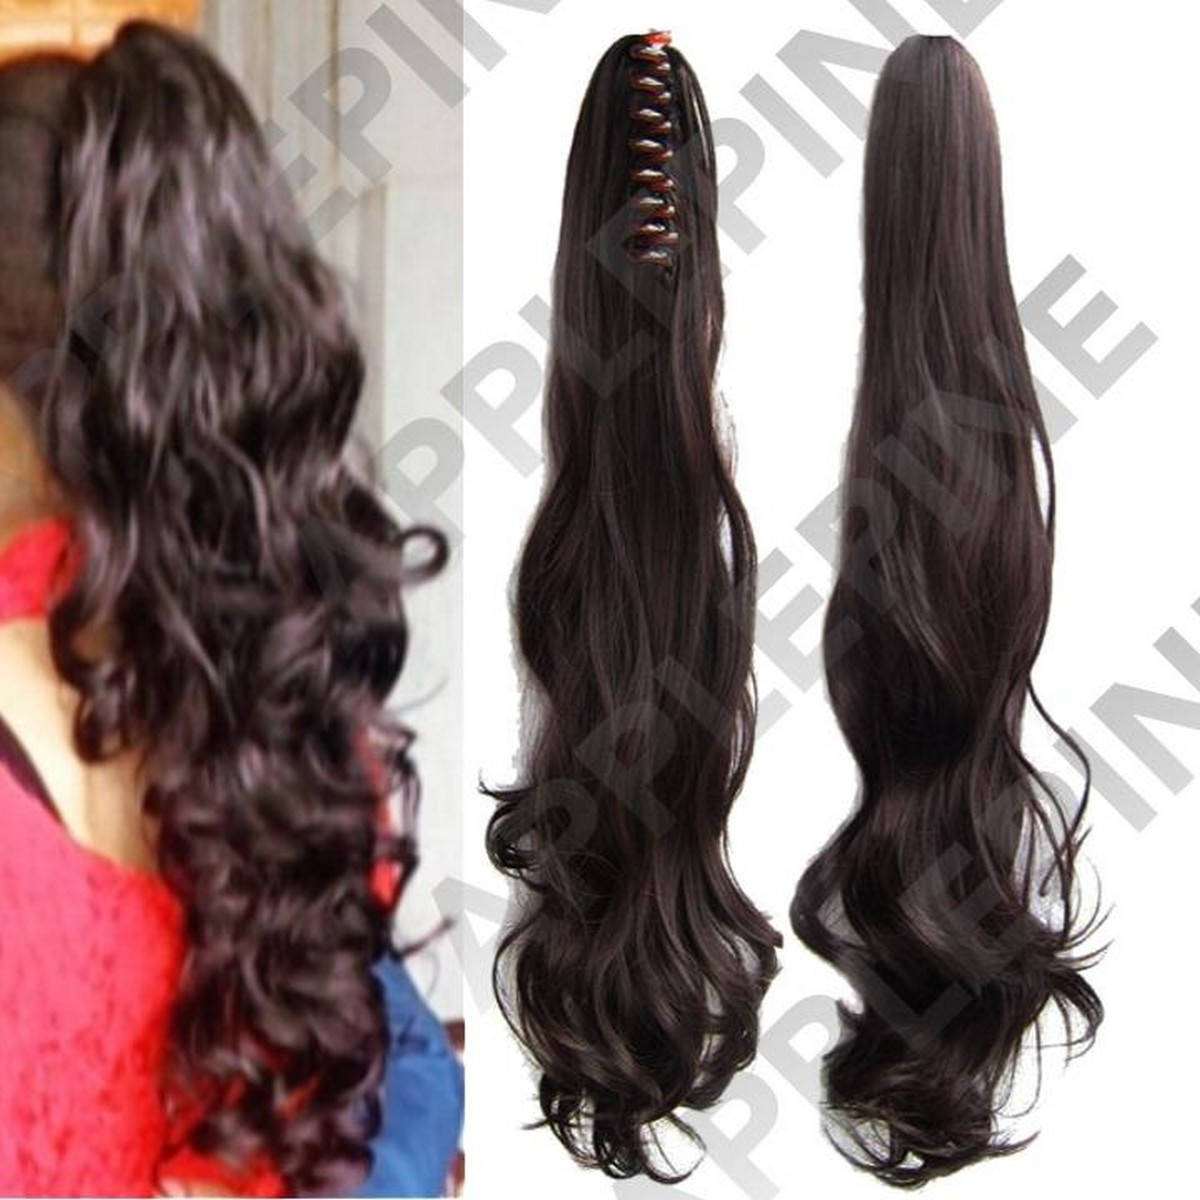 Long Ponytail Big Wave Clip in Pony Tail Hair Extension Ponytail Extension Bendable Synthetic Clip In Ponytail Hair Extension Long Wave Style Ponytail - Natural Brown Color